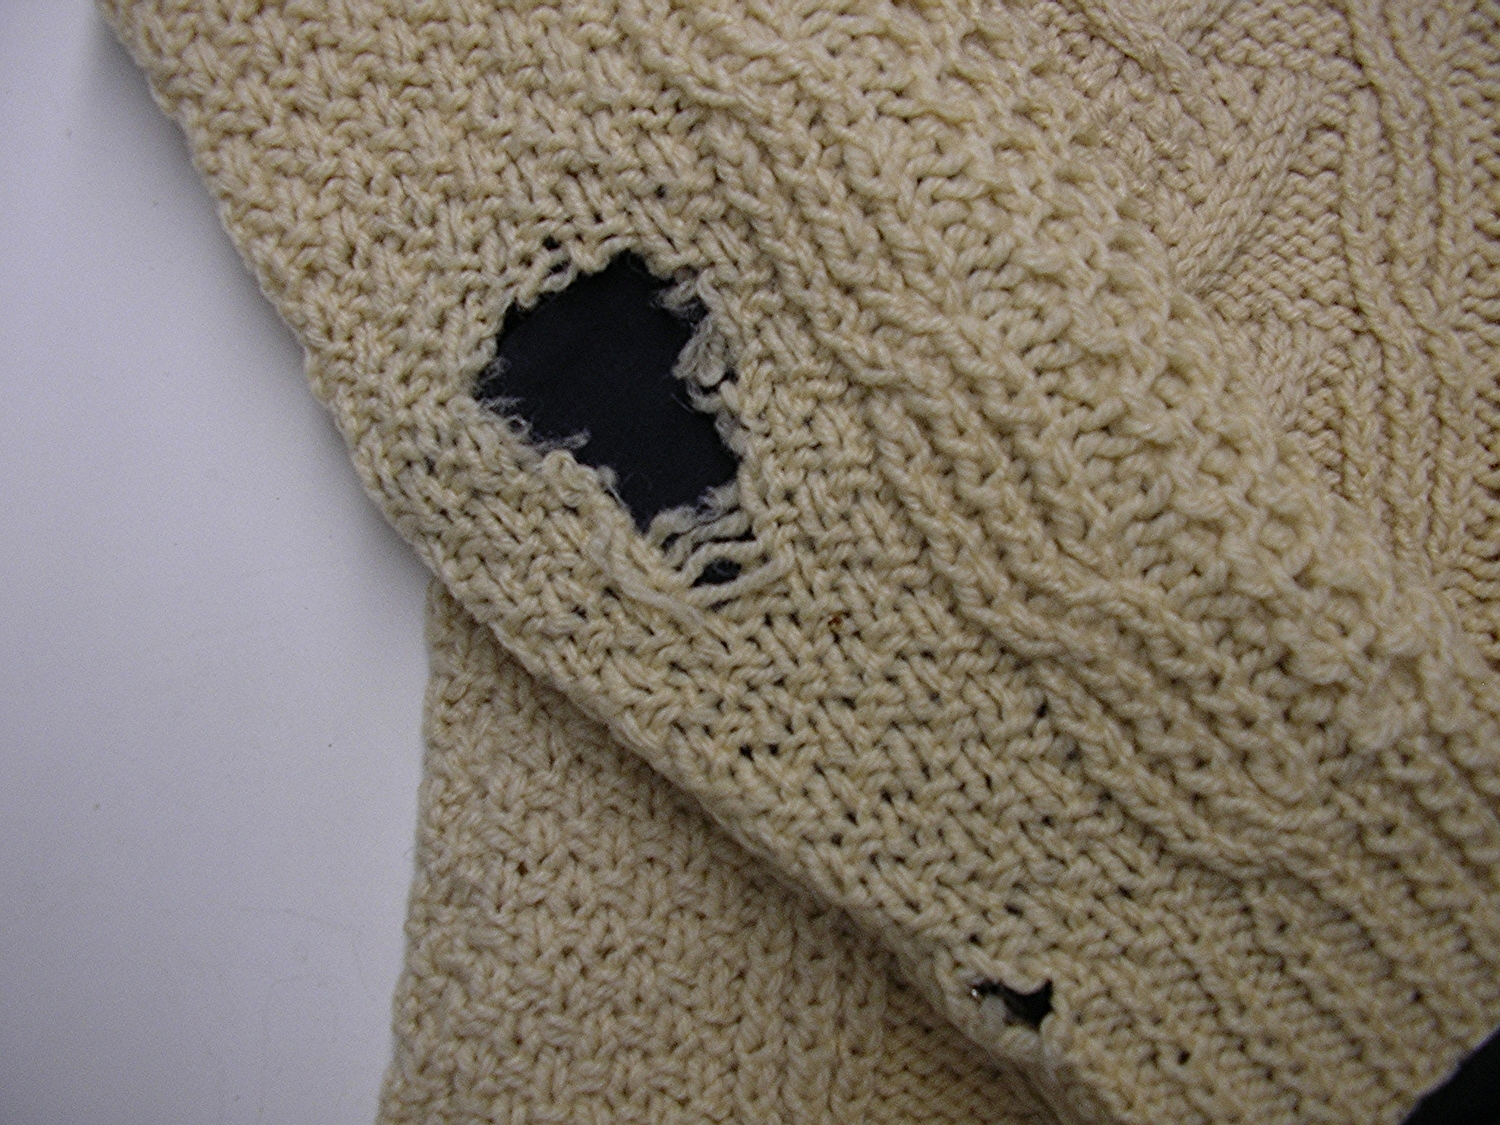 After finding a shade of wool to match, the broken stitches are gathered and knitting with needles is done.